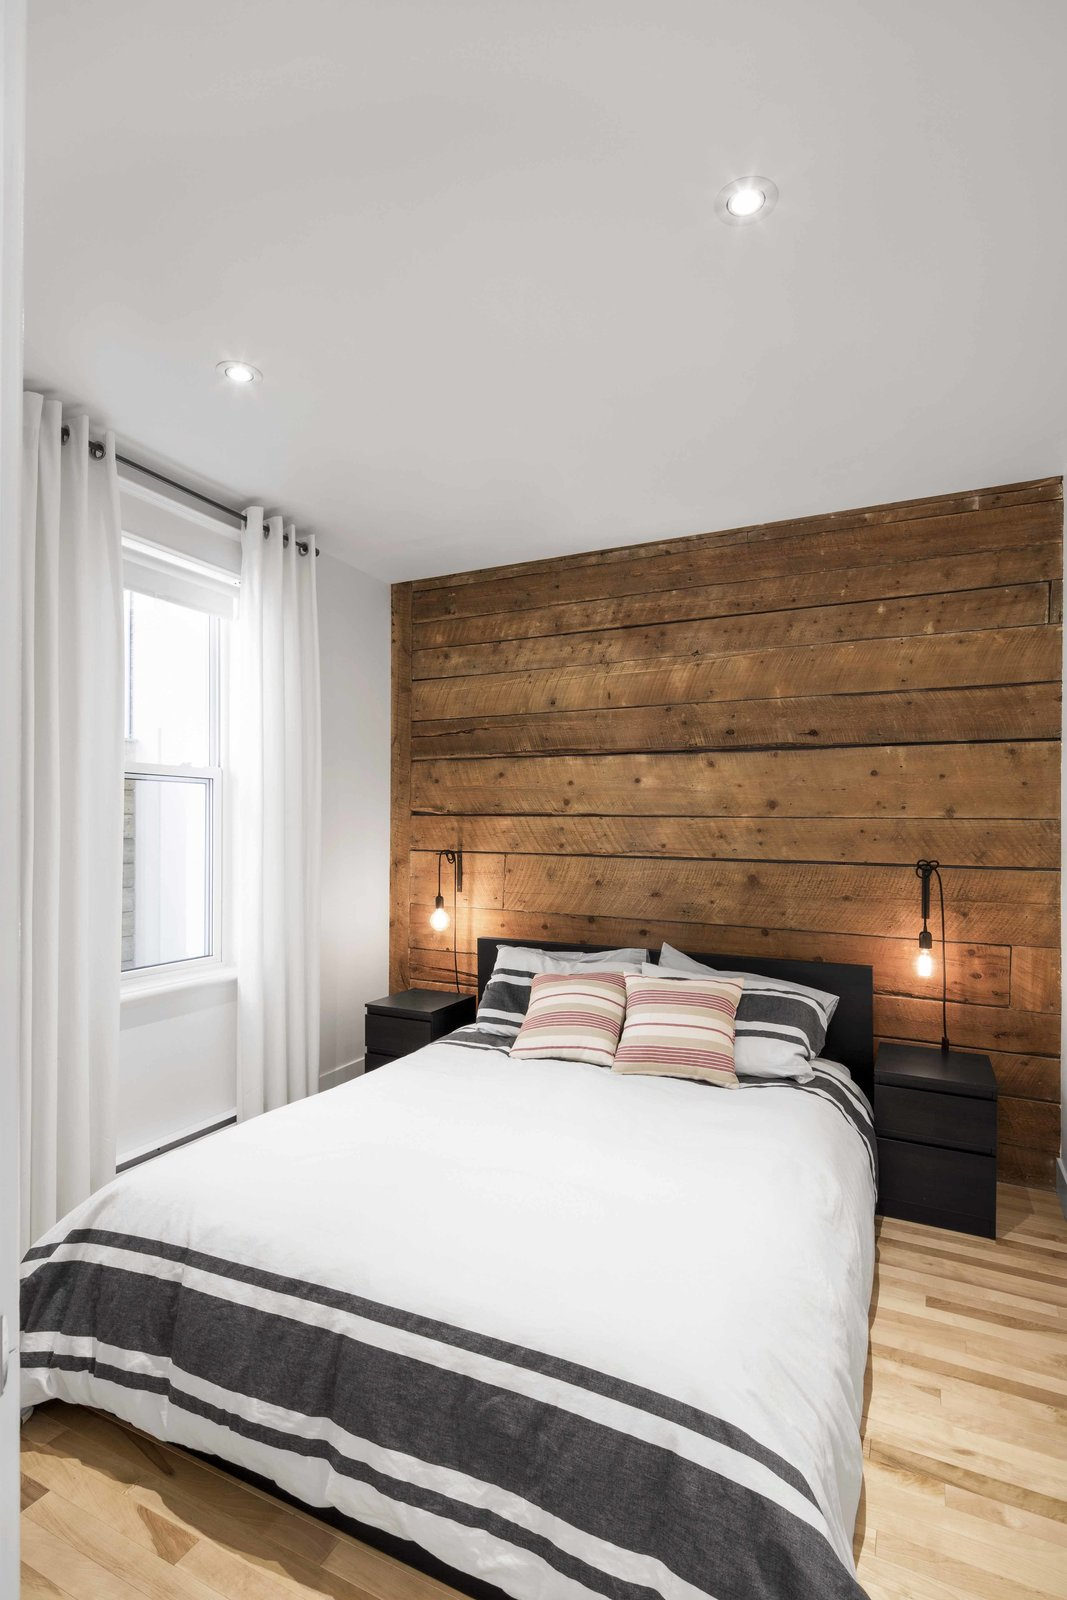 Exposed boards that were salvaged from the original apartment were installed into the master bedroom. They provide a rustic atmosphere, enhanced by the addition of DIY industrial lighting. The bedding, curtains, and bedside tables are all from IKEA.  Bedrooms by Dwell from Blocked in on Two Sides, a Renovation Opens a Quebec Apartment to Tons of Natural Light